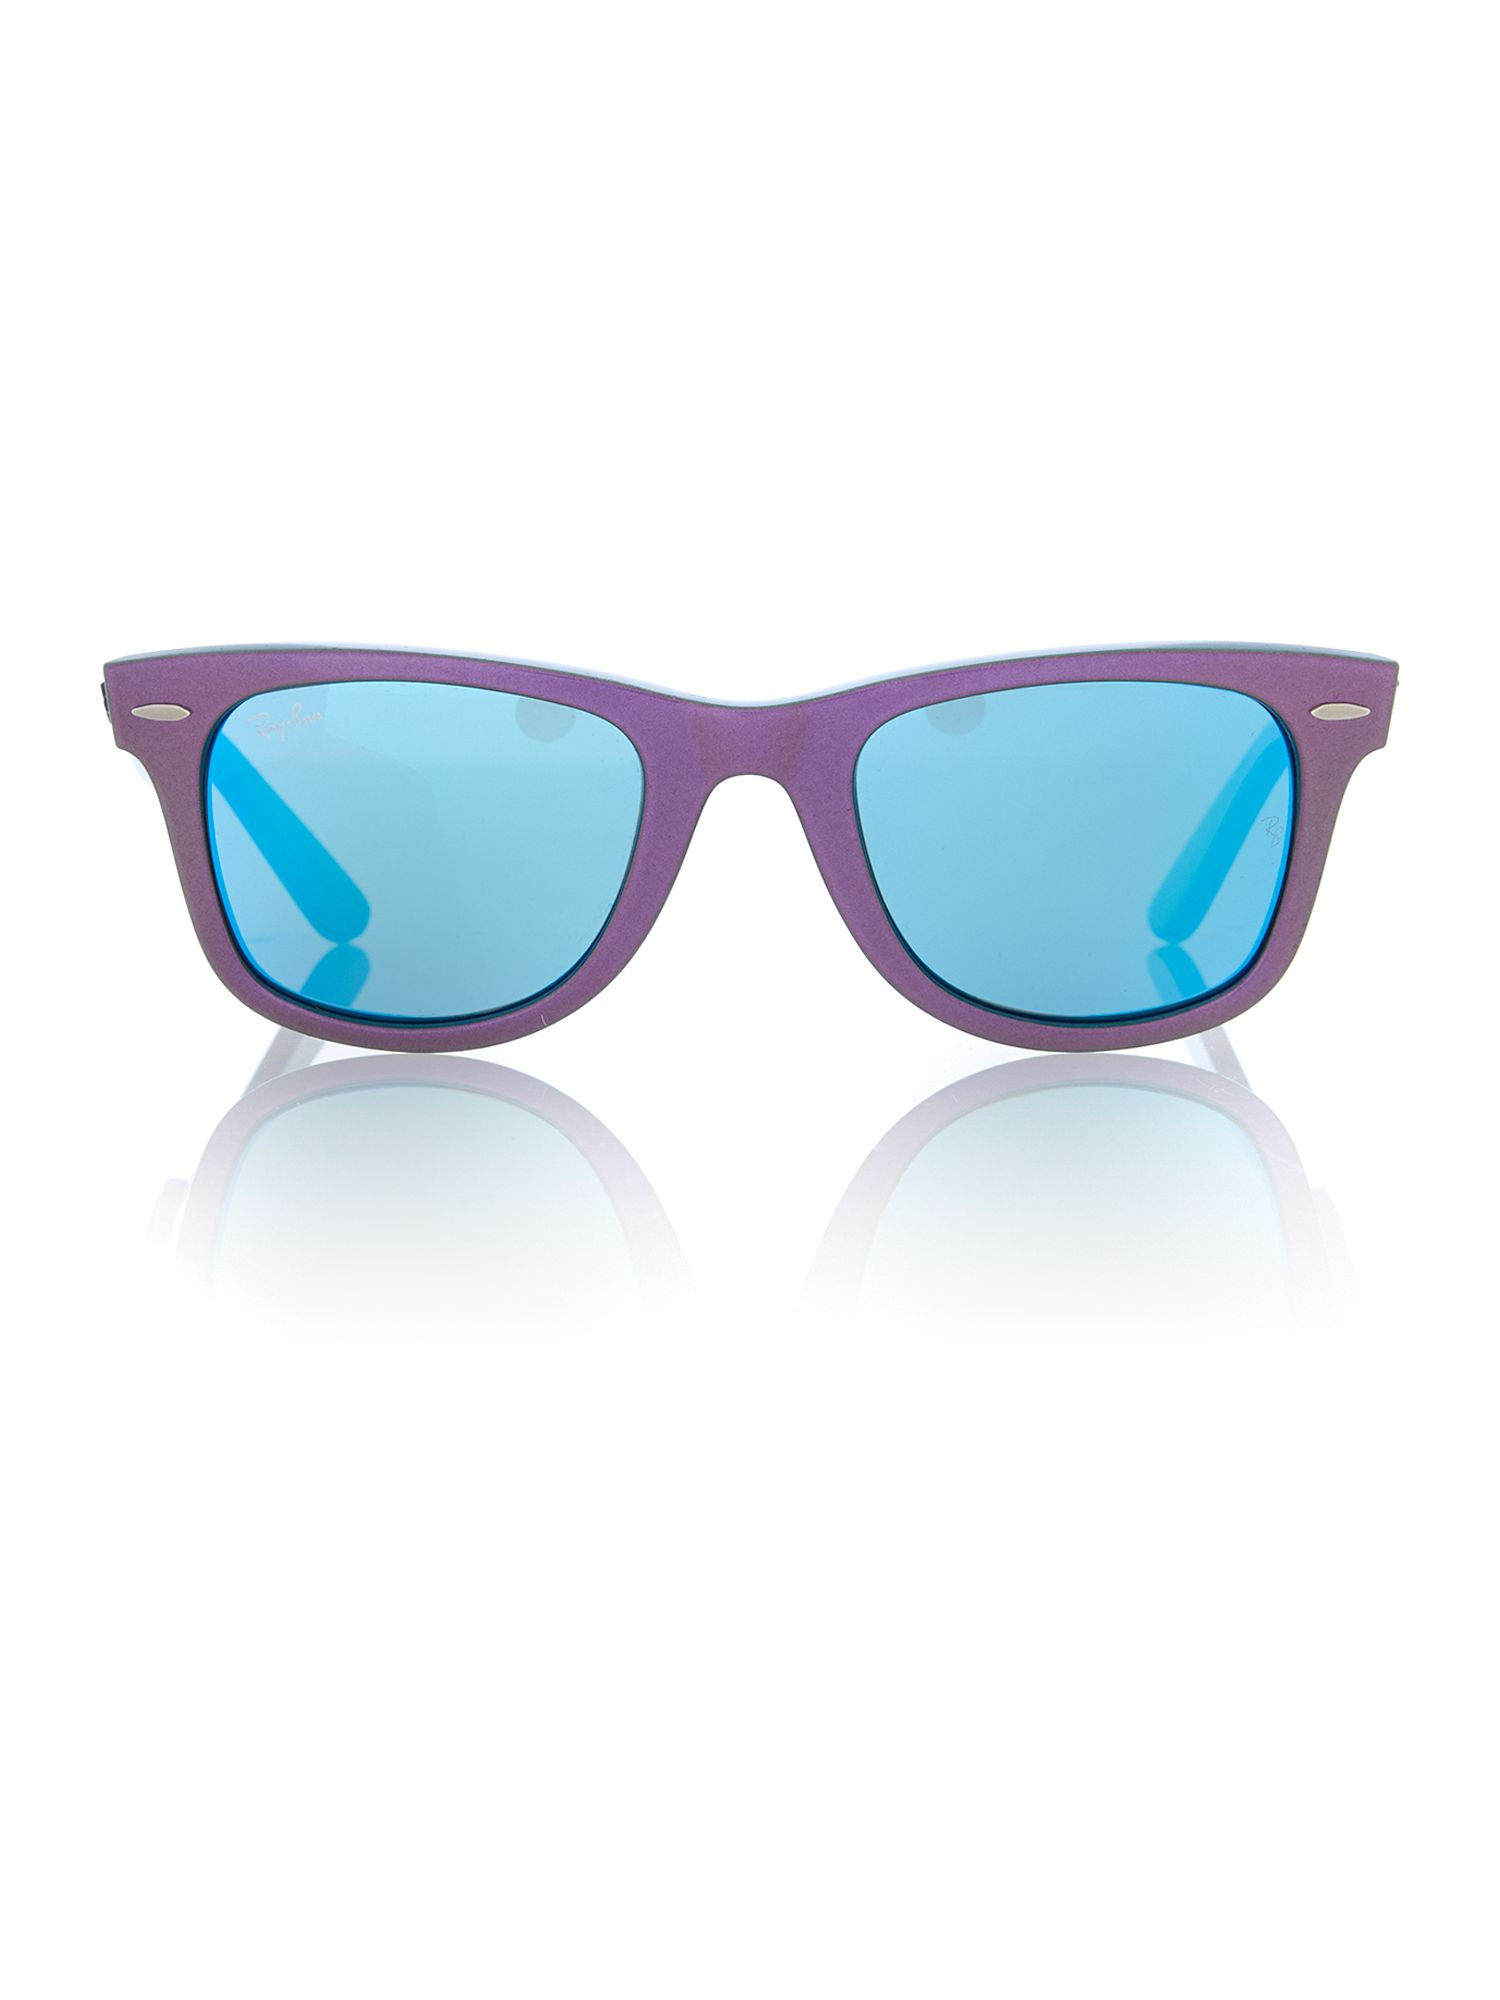 Unisex grey mirror blue squared sunglasses